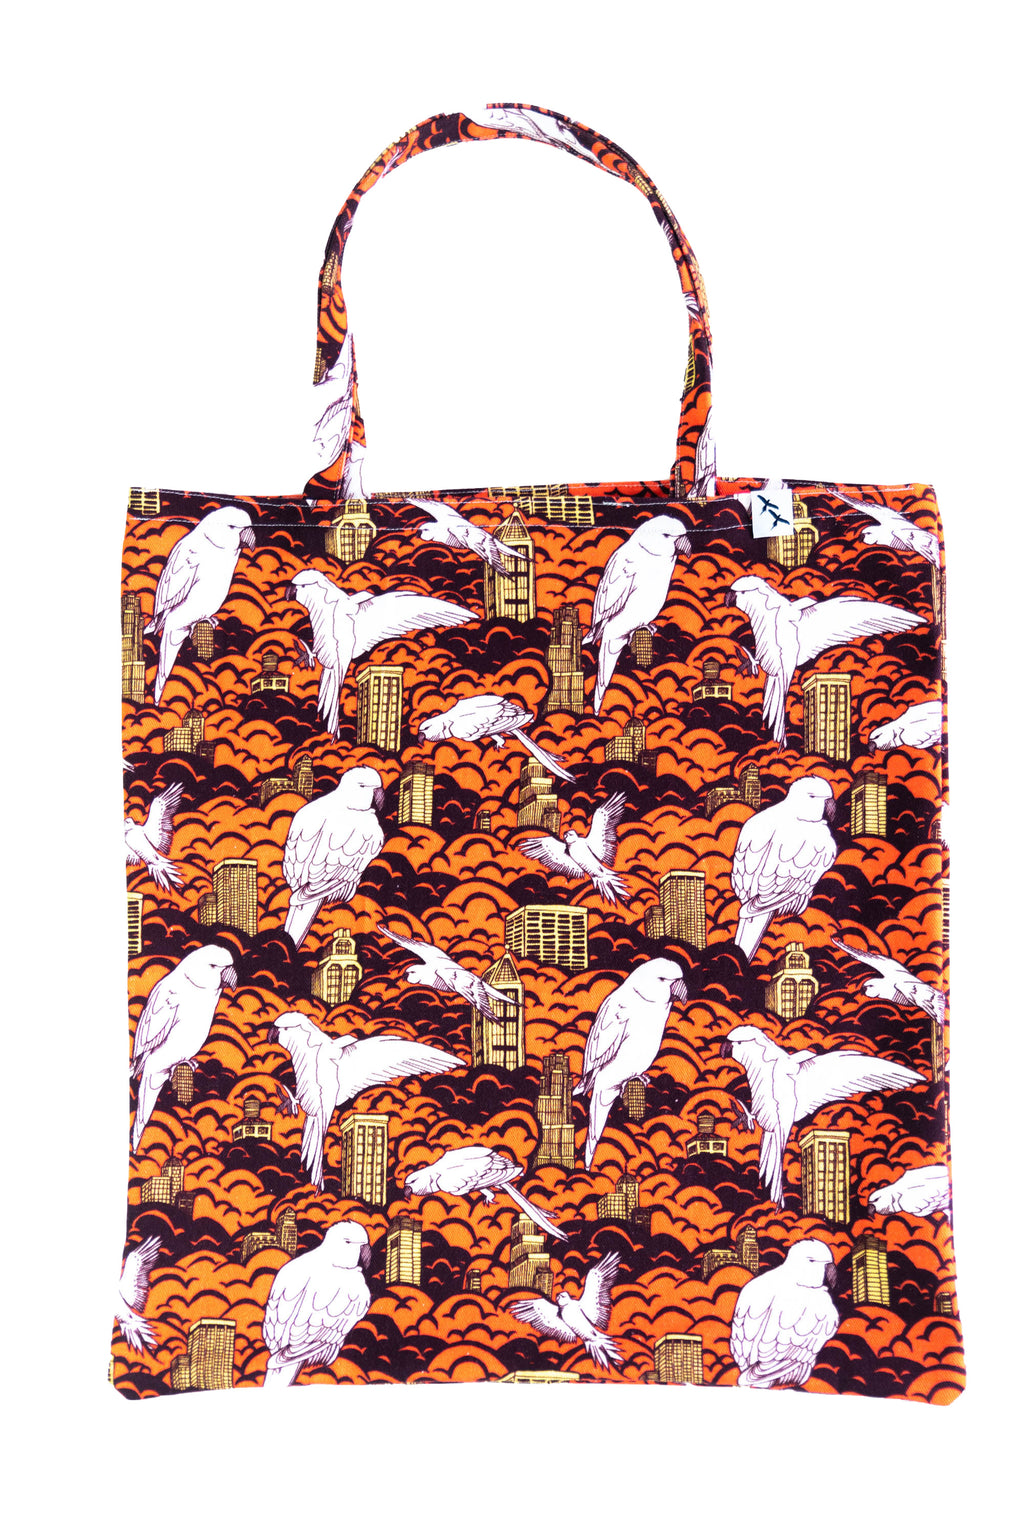 TOTE BAG - BIRDS & BUILDINGS sundown